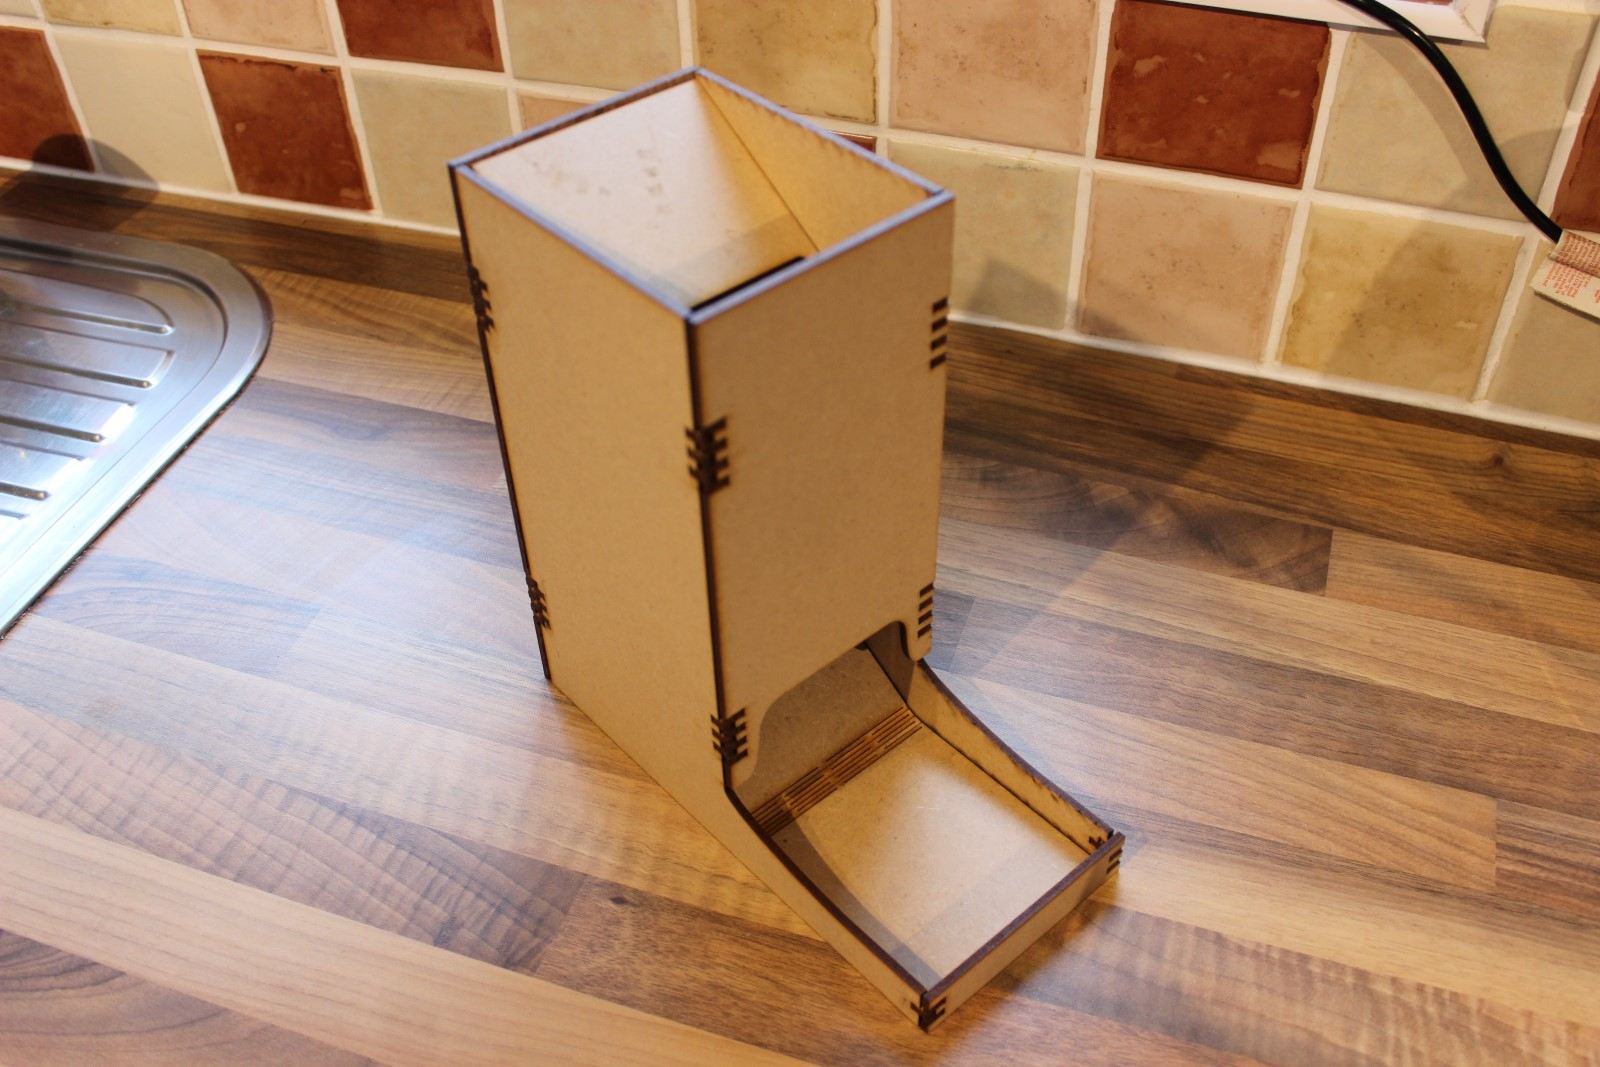 Building Your Own Dice Tower